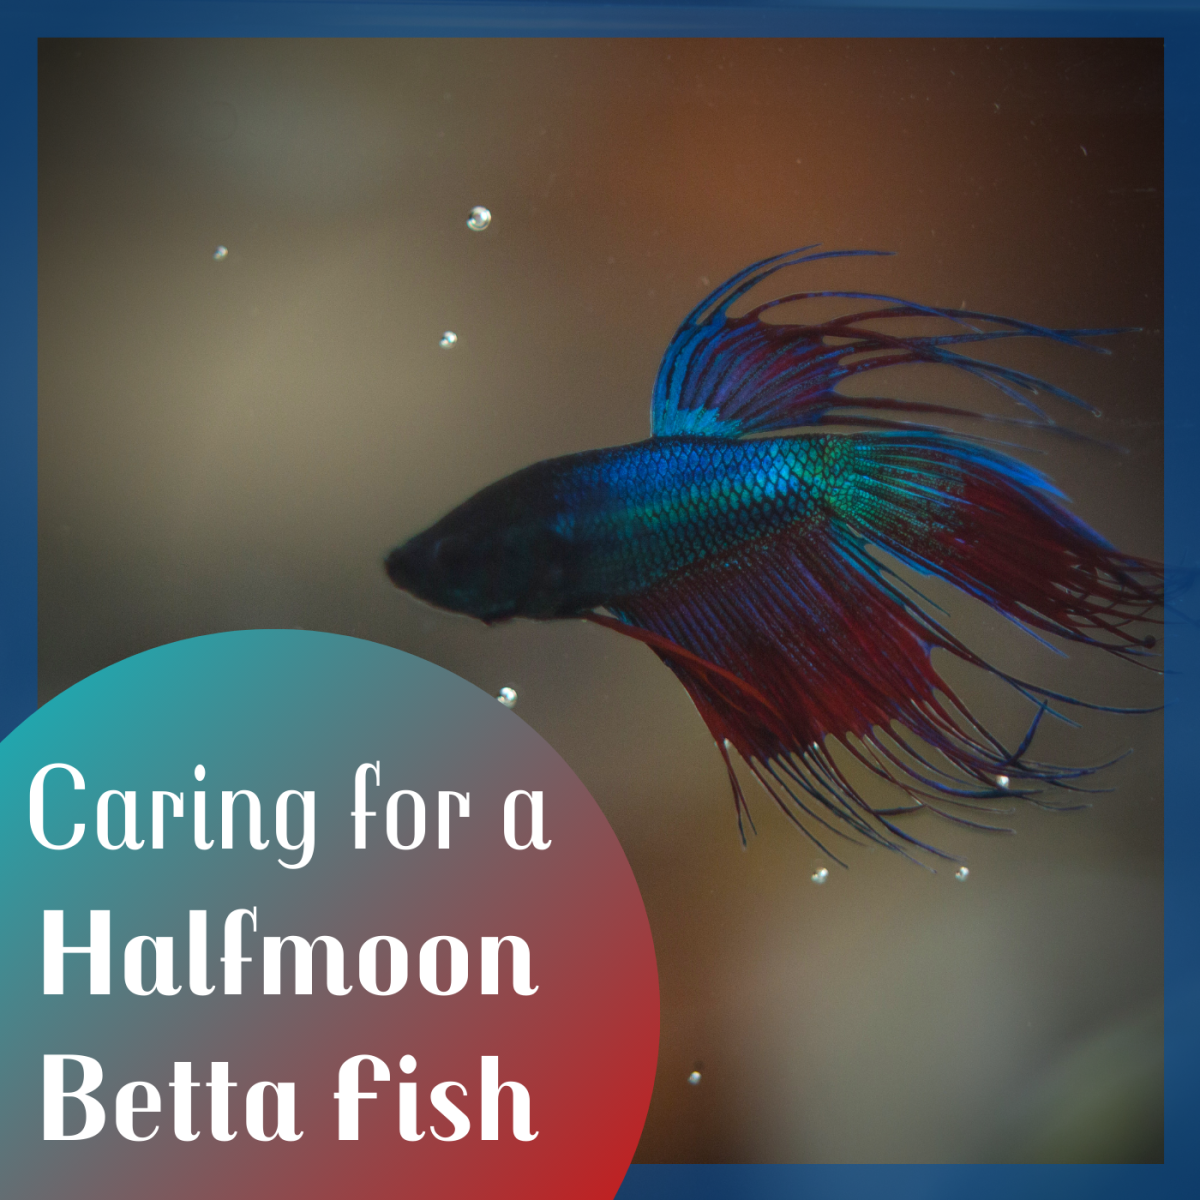 This fish is technically a crowntail betta, which is in the same family as halfmoon betta fish.